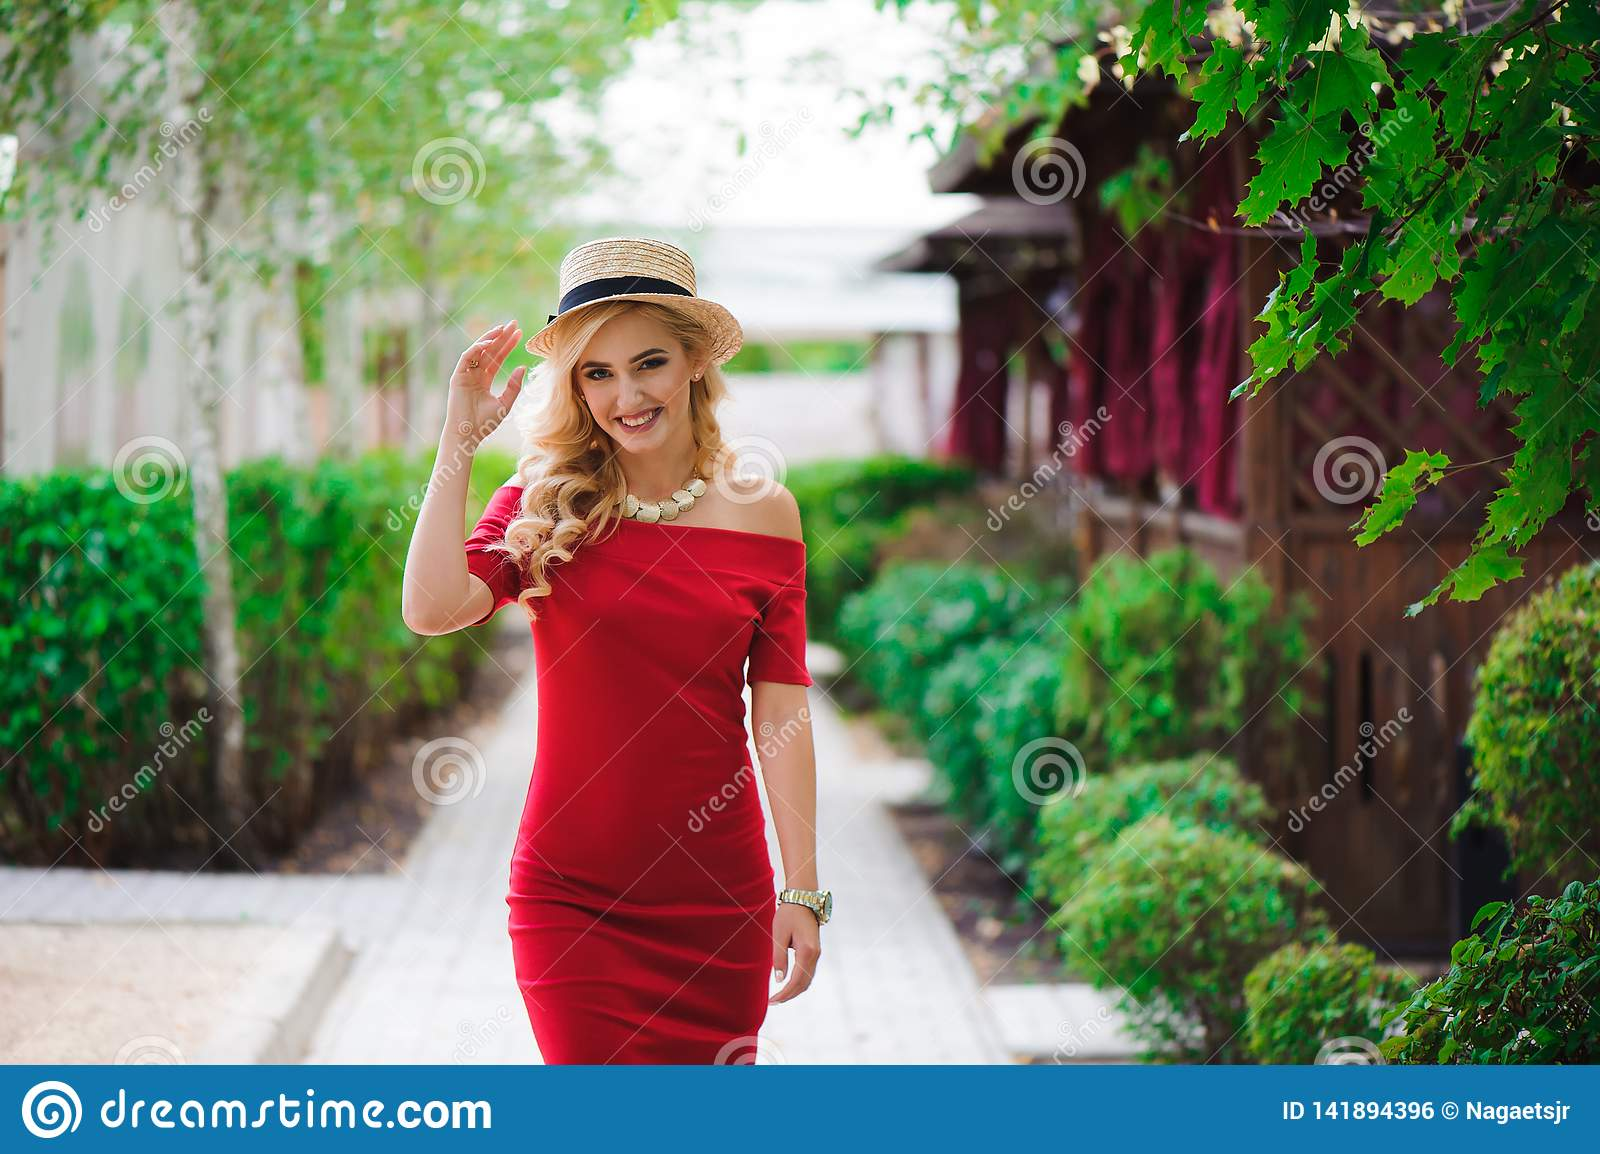 Beautiful girl in elegant dress and hat and charming smile posing for the photographer in the park.